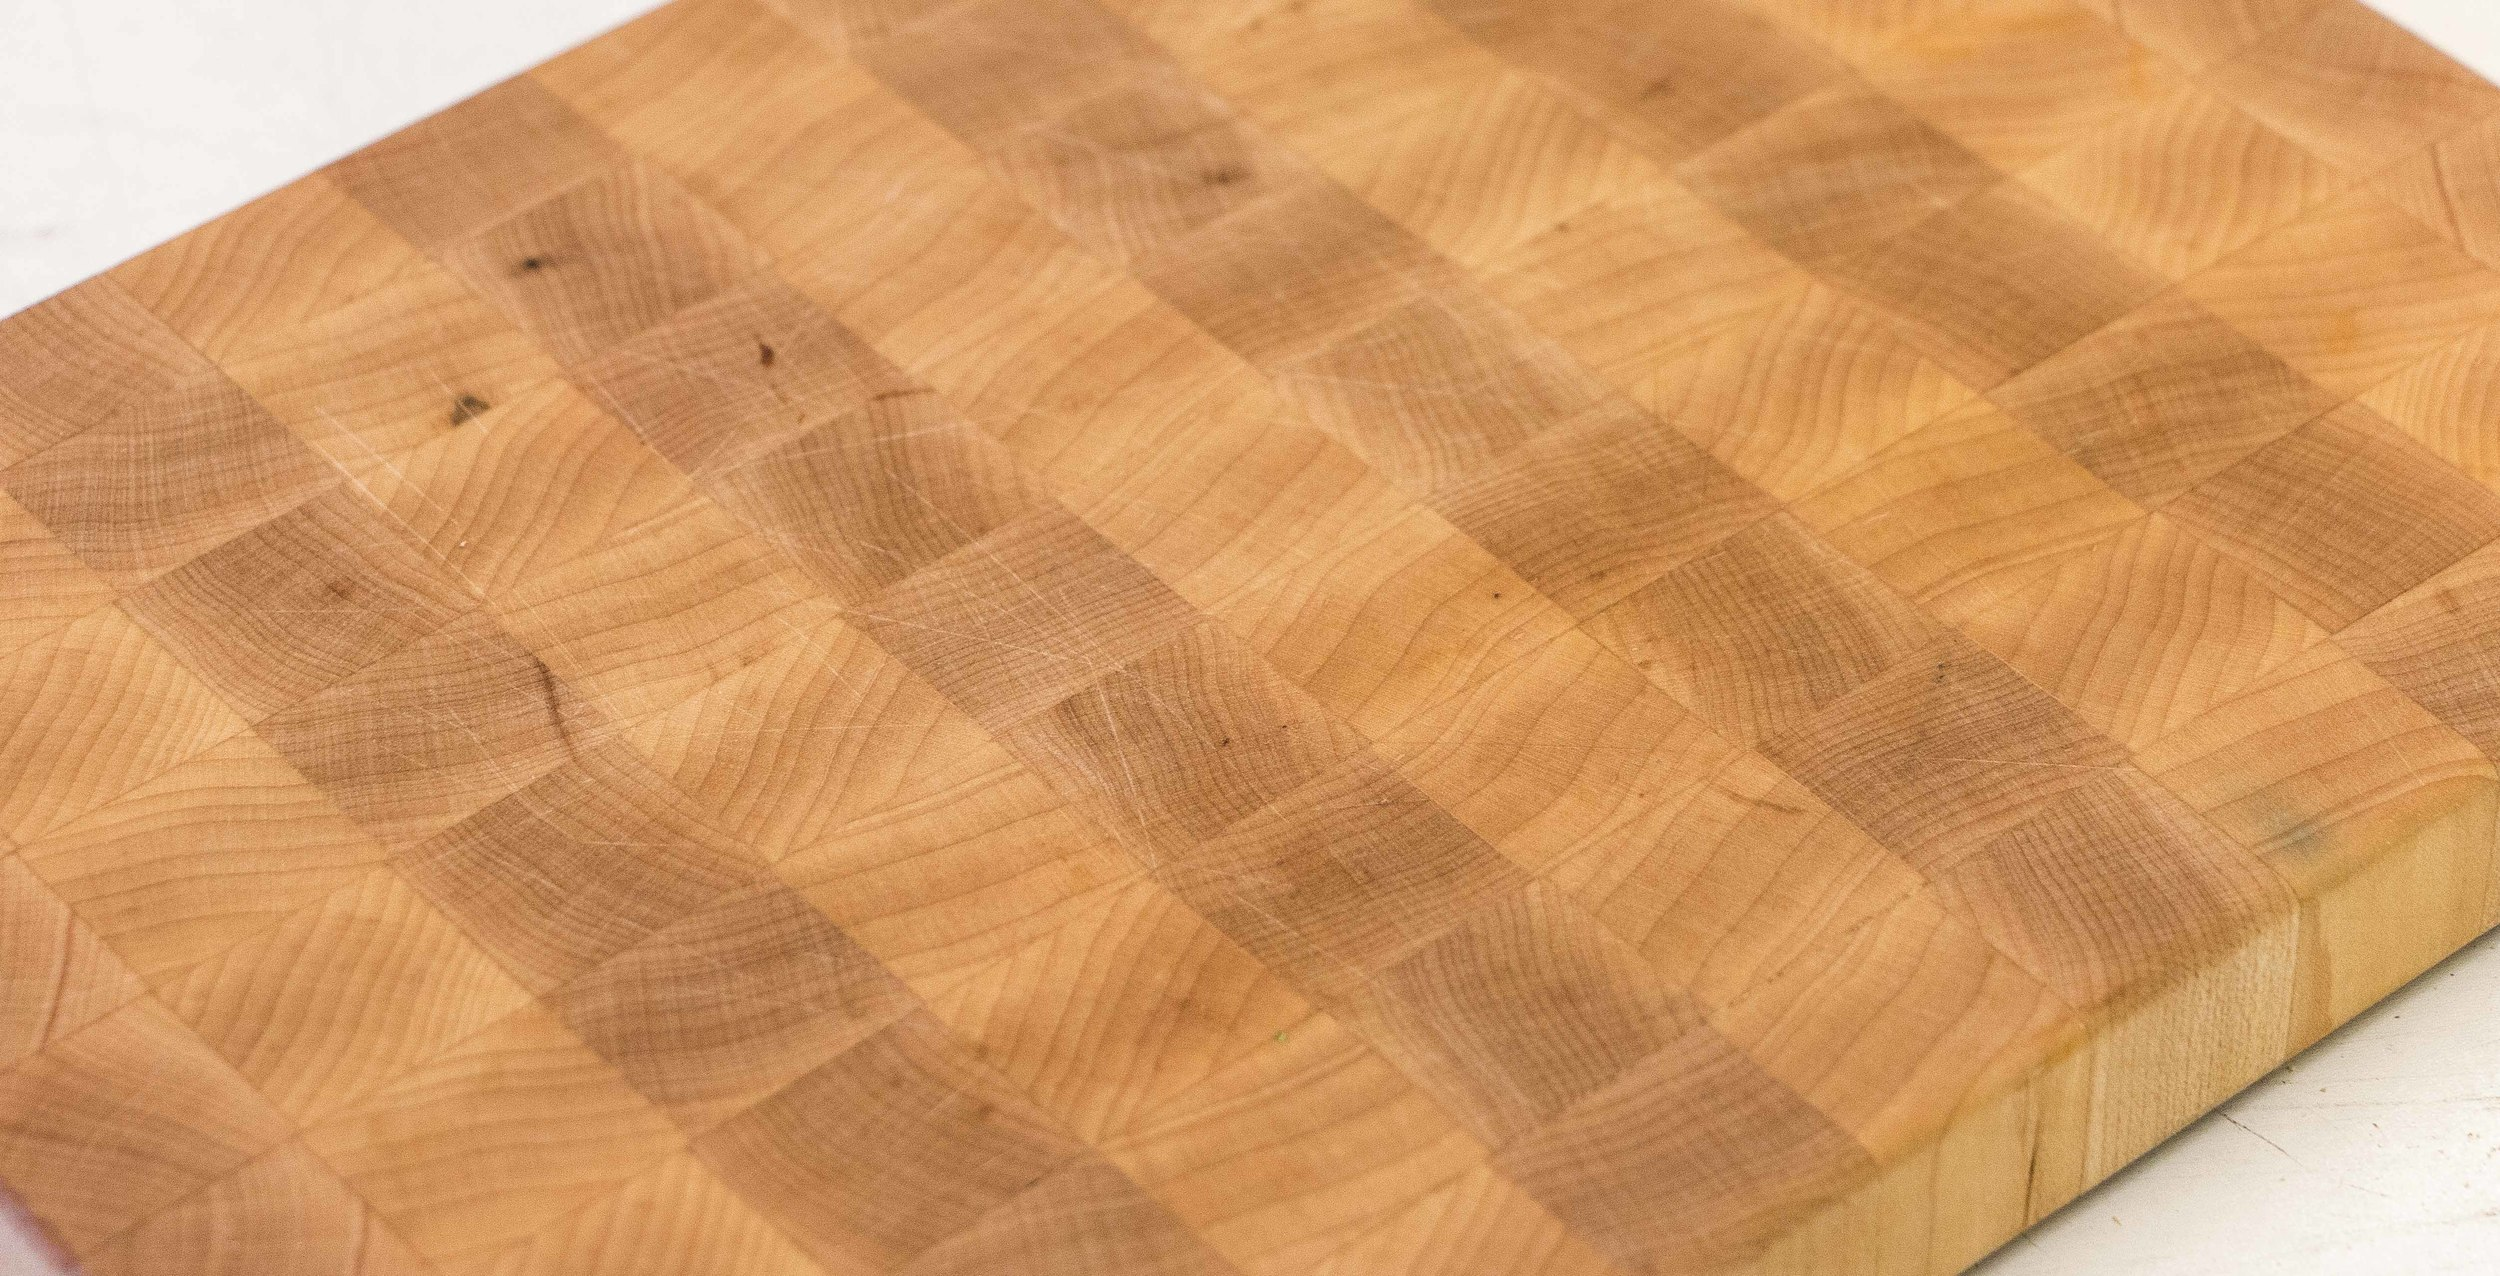 cutting board after sanding and knife marks removed reveals a brand new cutting board